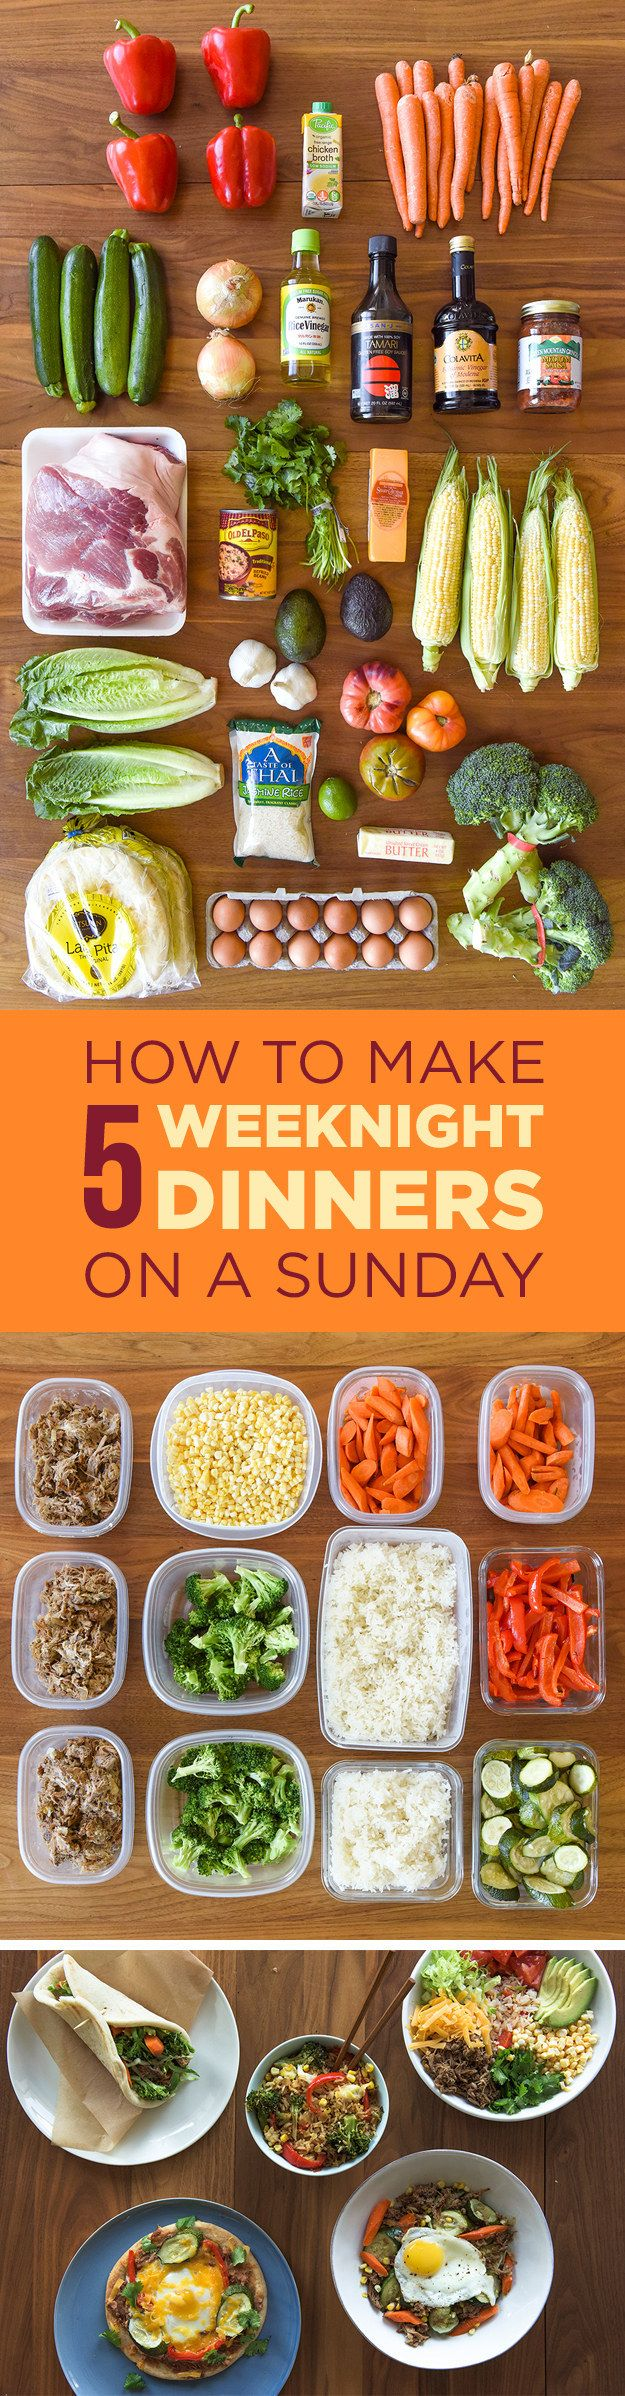 This four-person meal plan comes with a grocery list, step-by-step instructions, and zero weeknight hassle